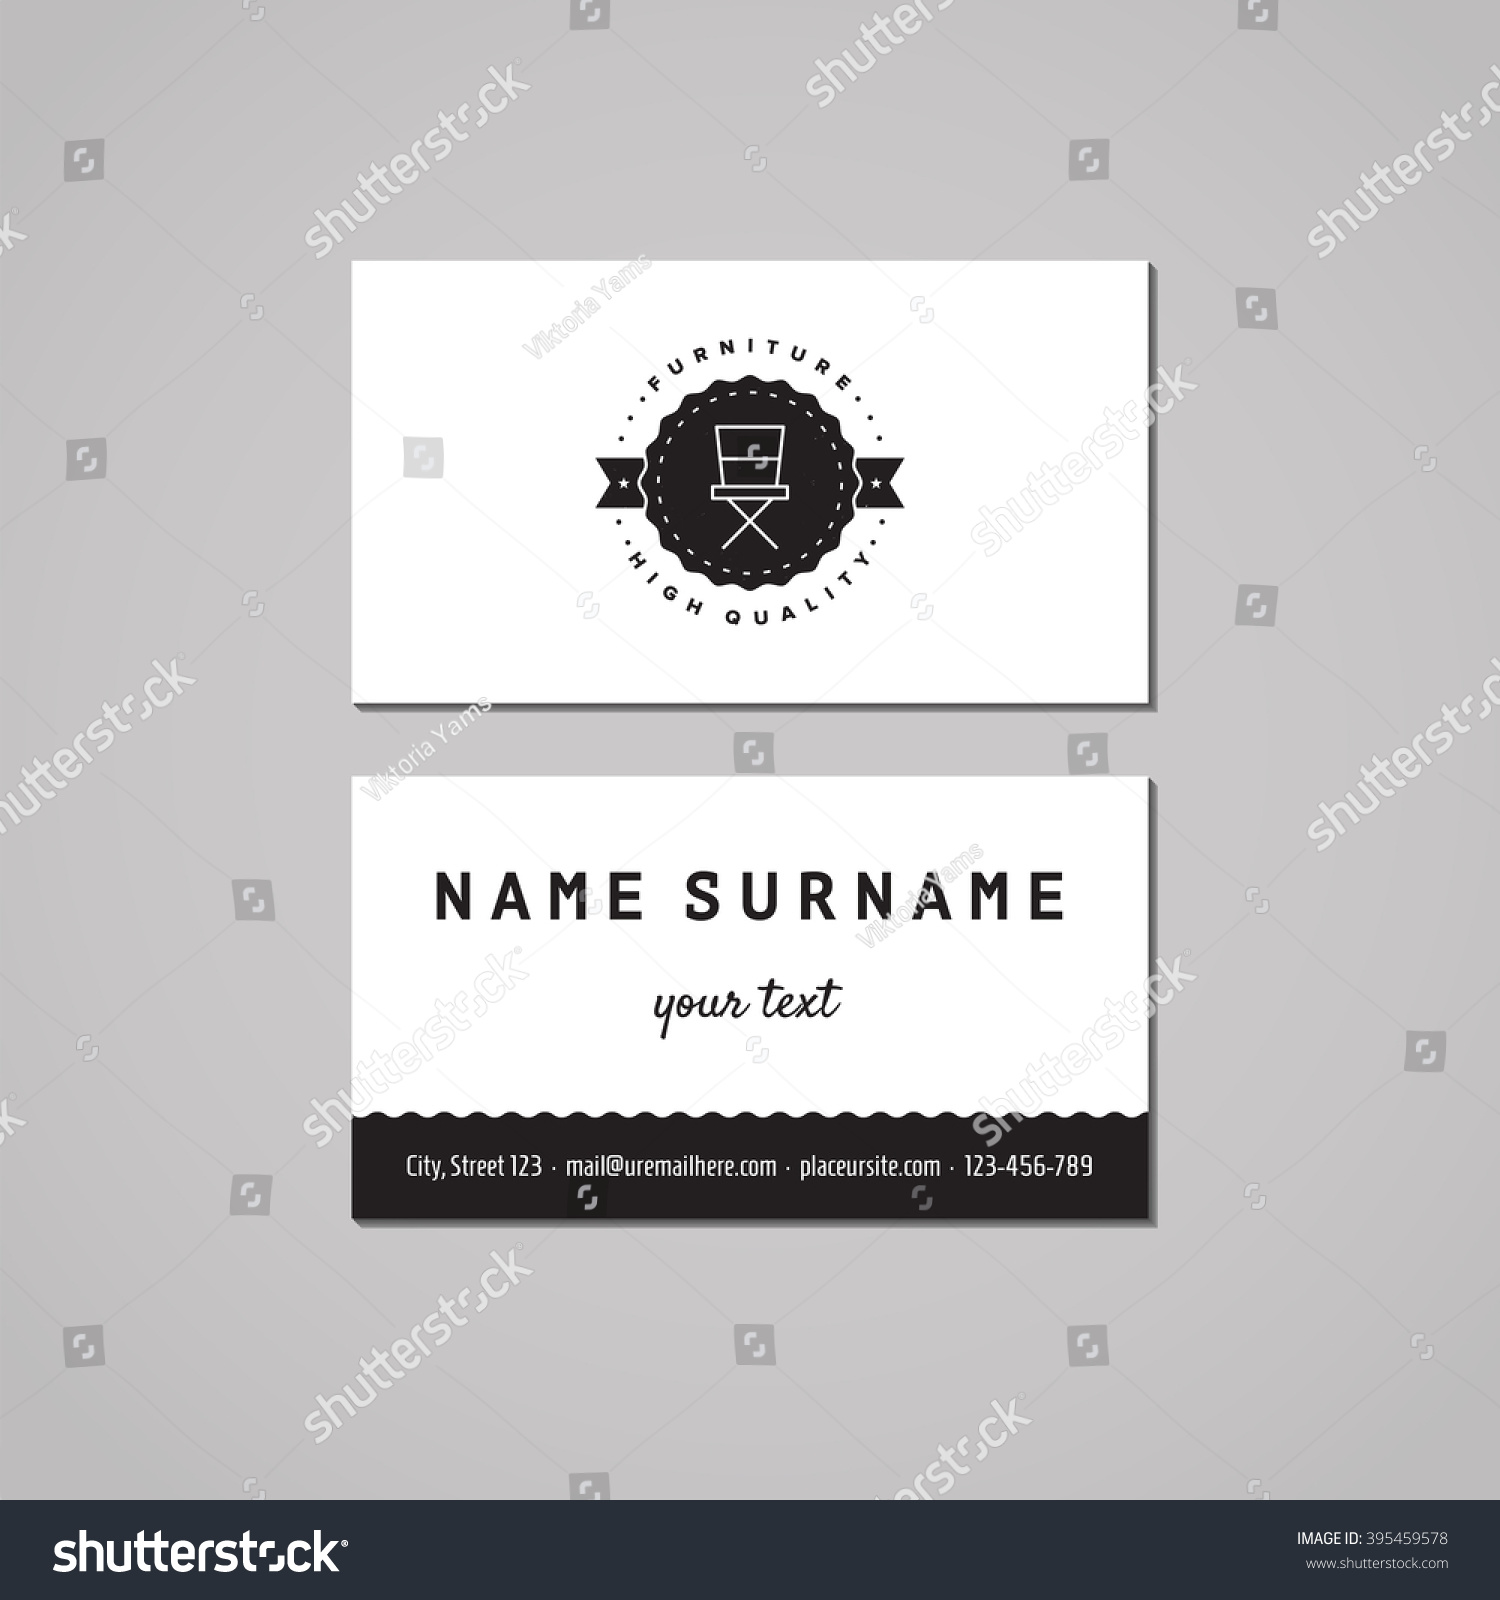 furniture business card design concept logo stock vector 395459578